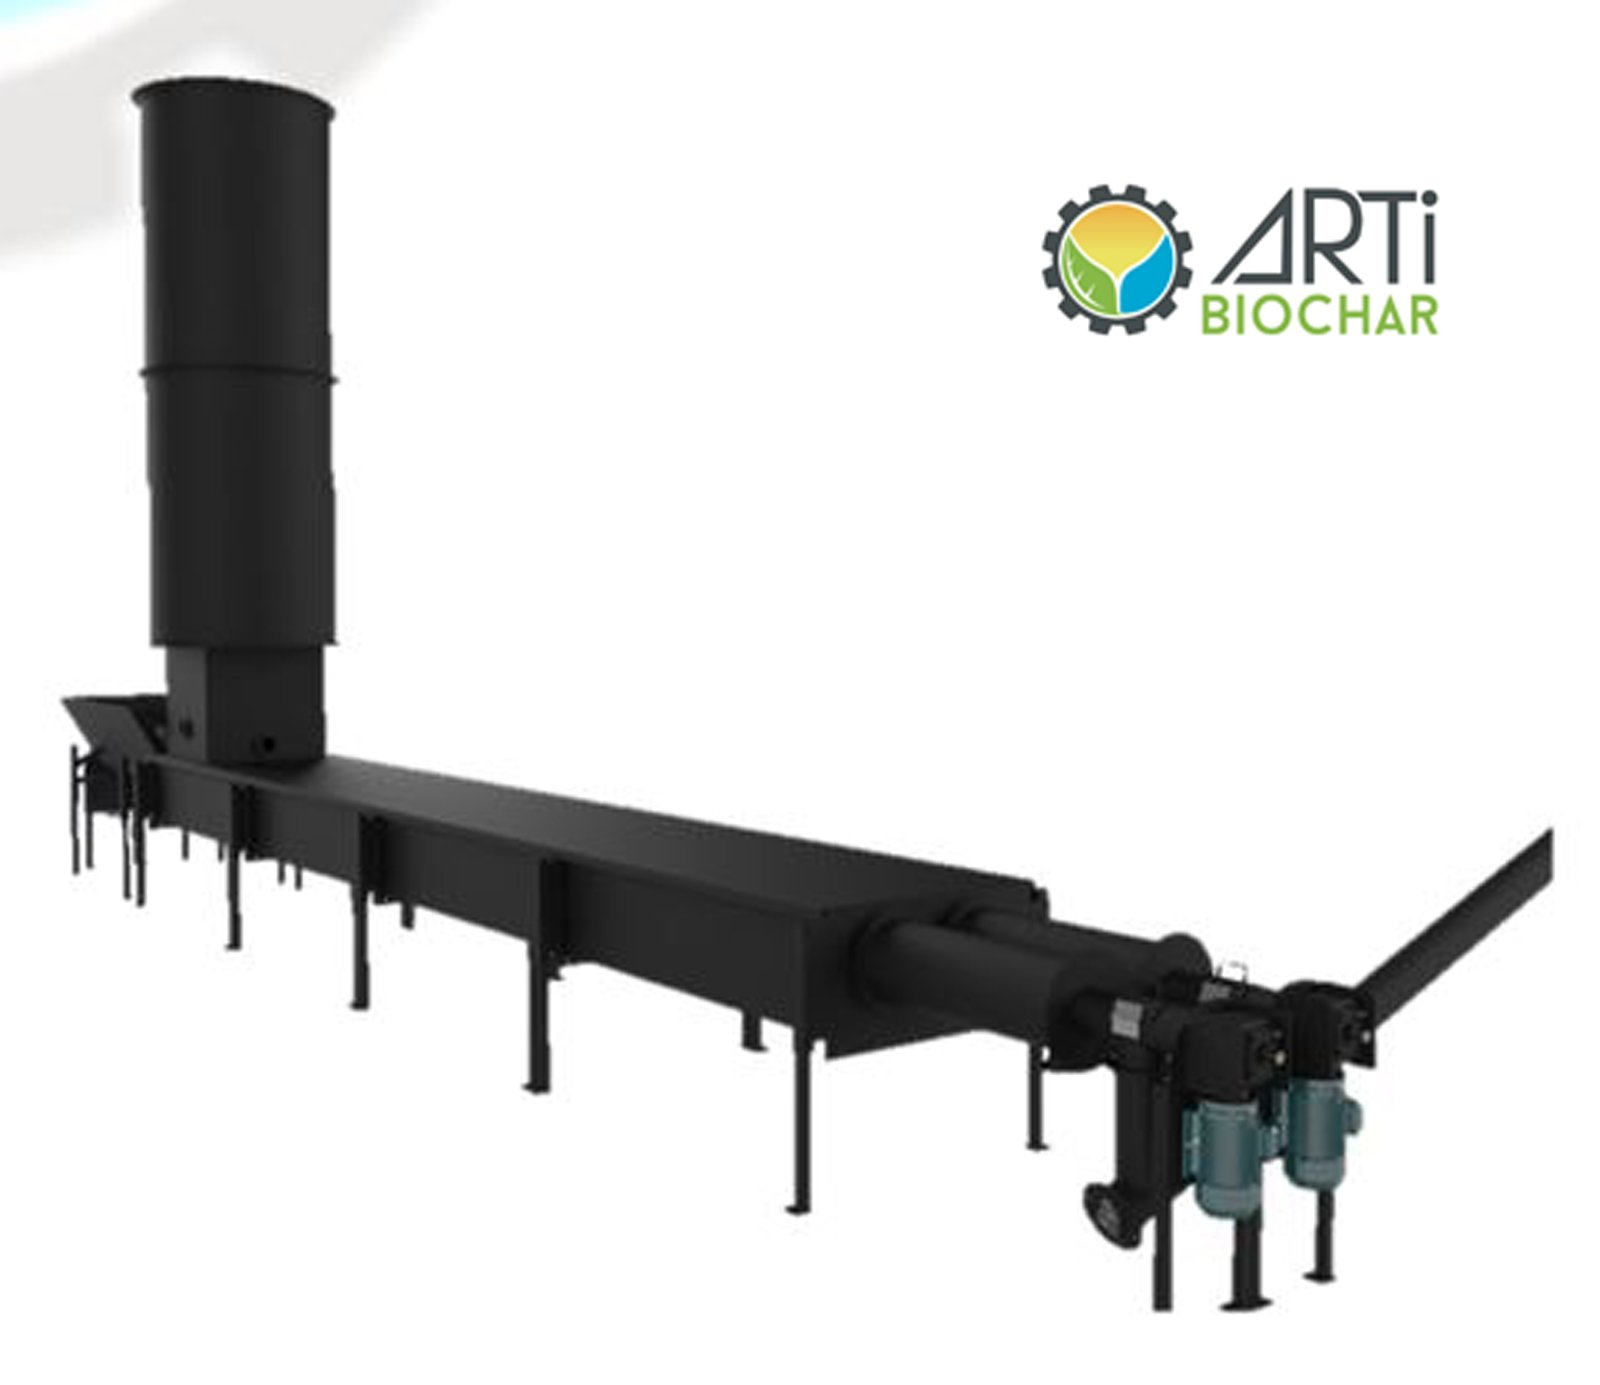 """ARTi accomplishes patent in pyrolysis """"Thermochemical conversion system and method"""""""